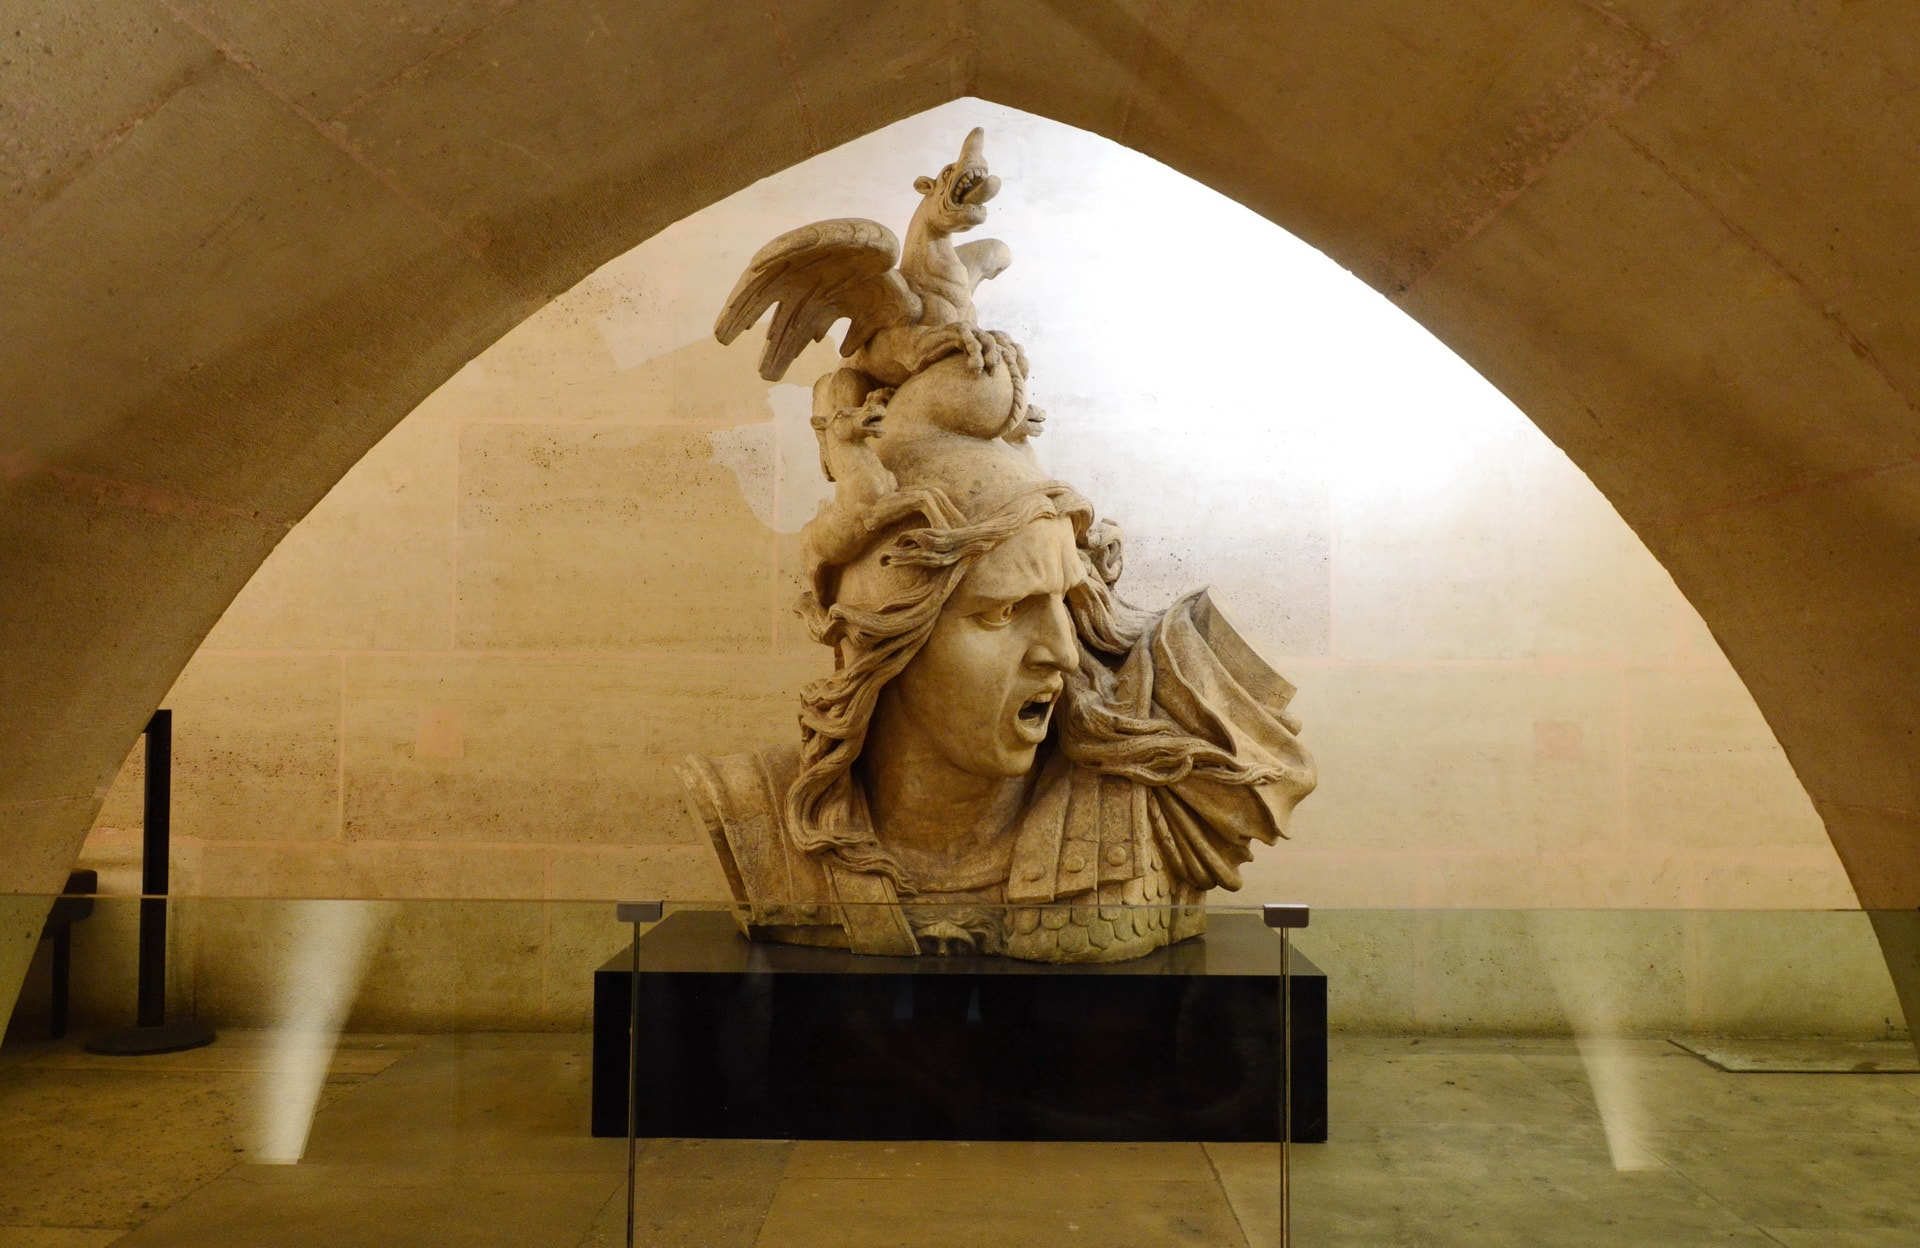 Statue inside The Arch